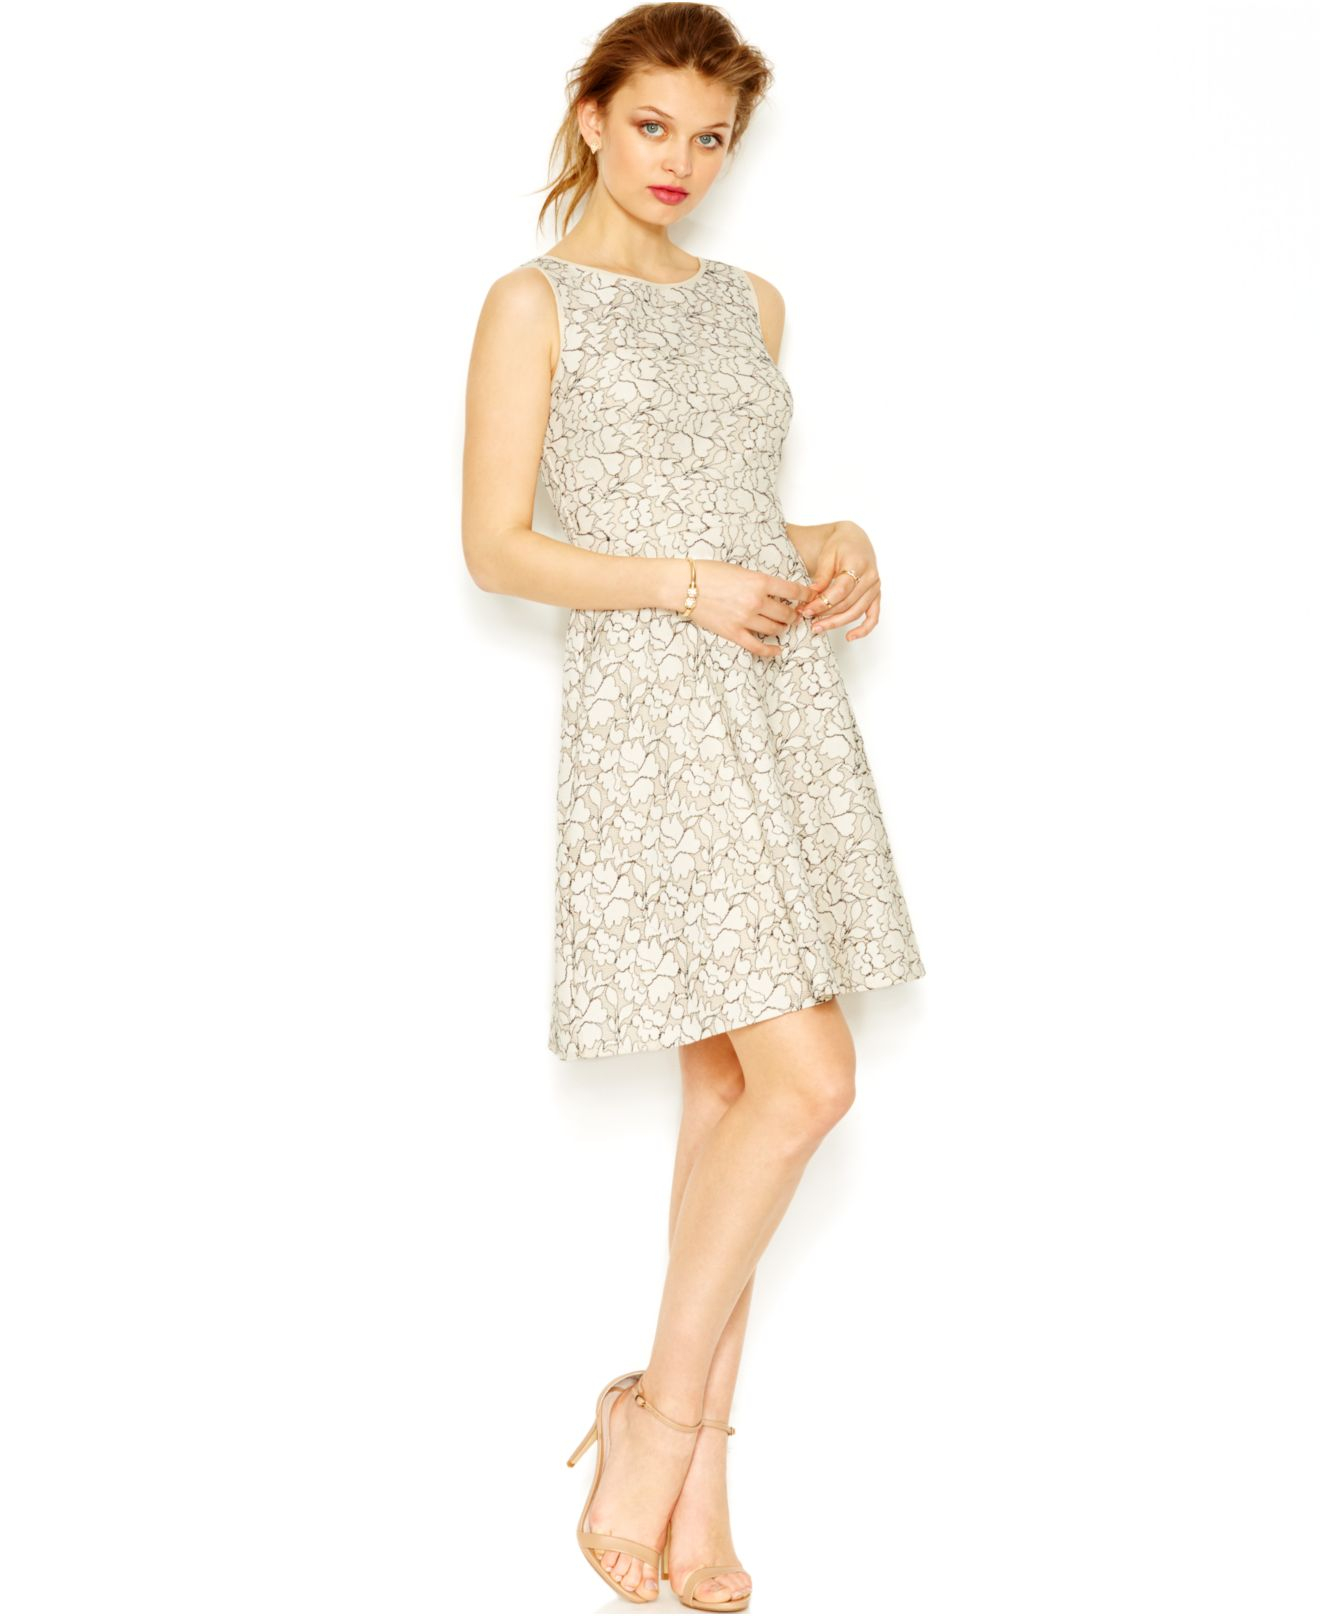 Betsey johnson Lace A-line Dress in Natural | Lyst